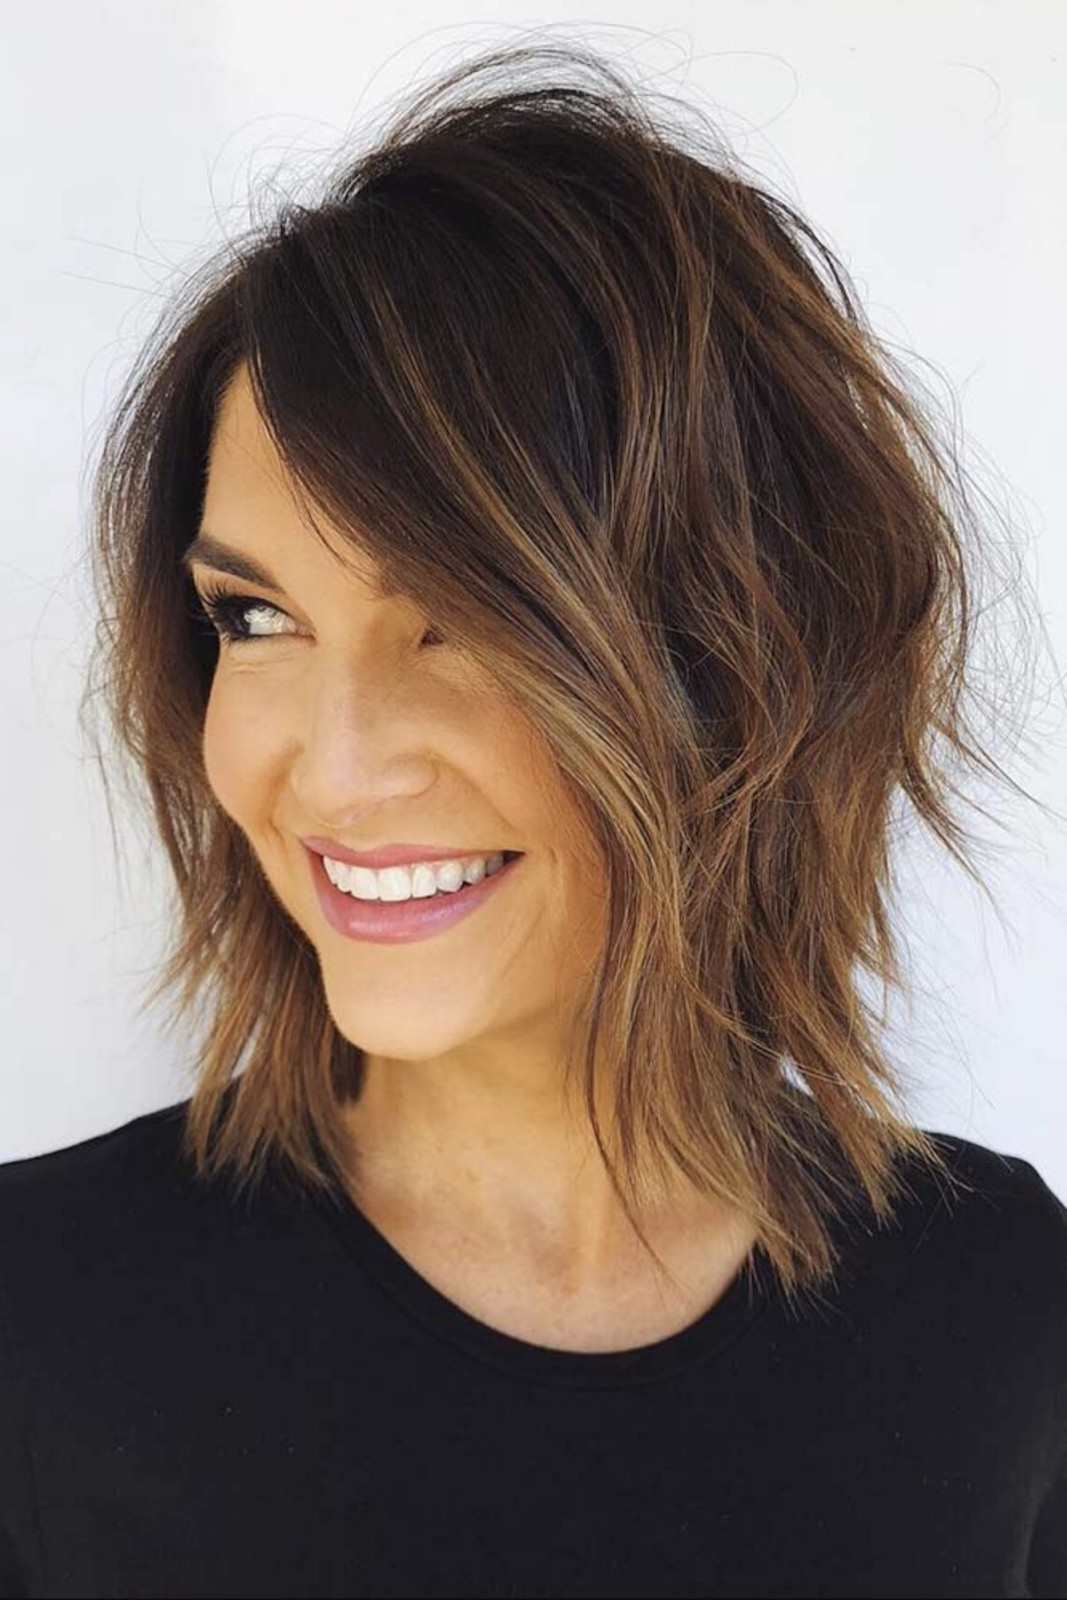 Popular Womens Hairstyles 2020  2019 2020 Short Hairstyles for Women Over 50 That Are